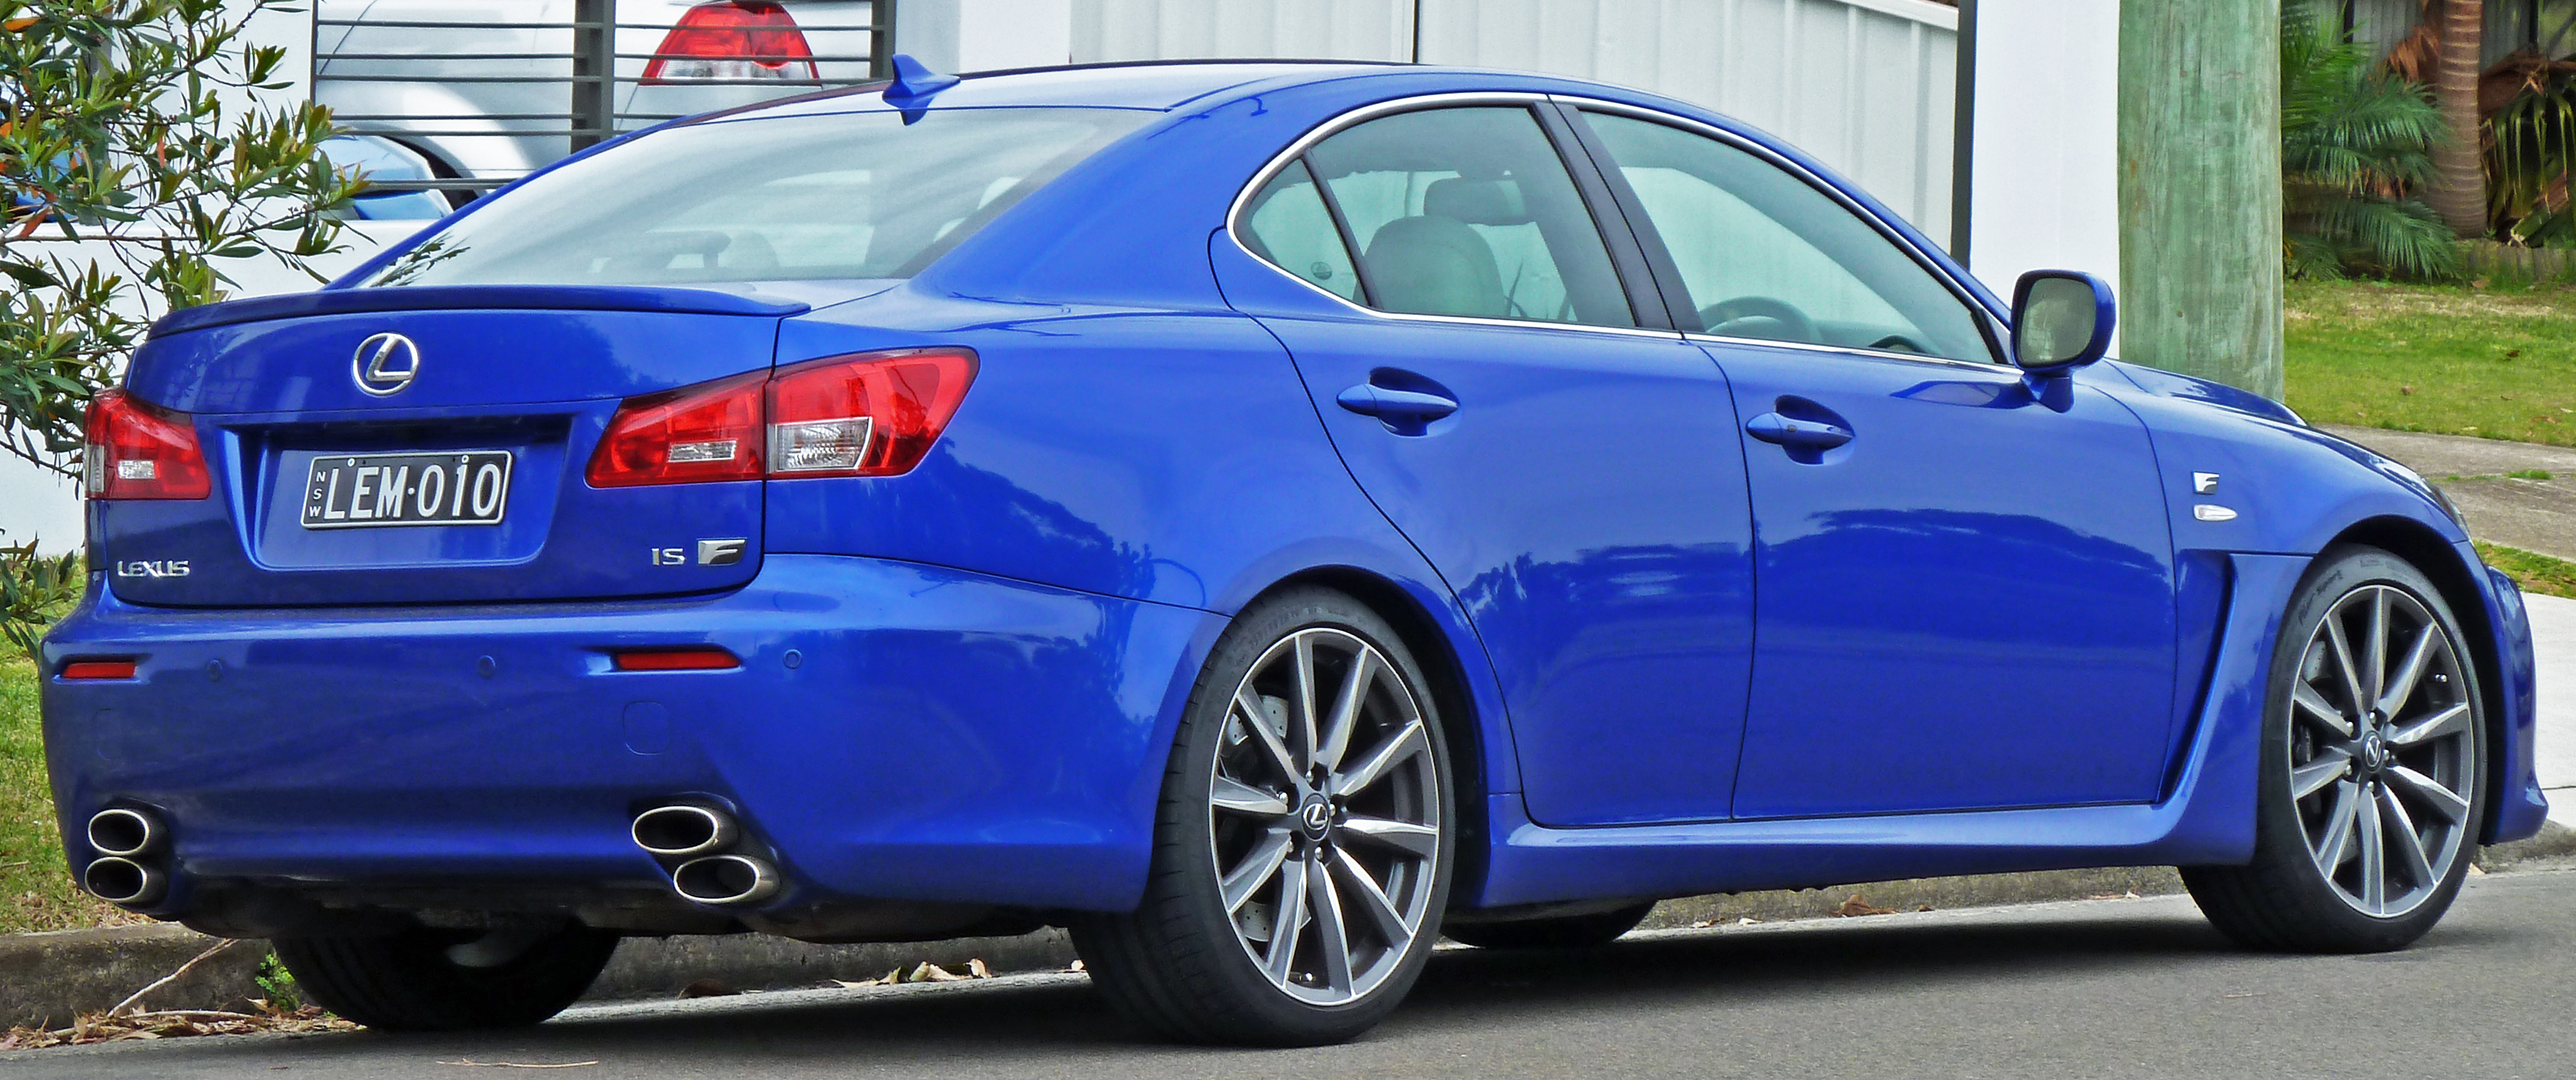 2010 Lexus Is F #2